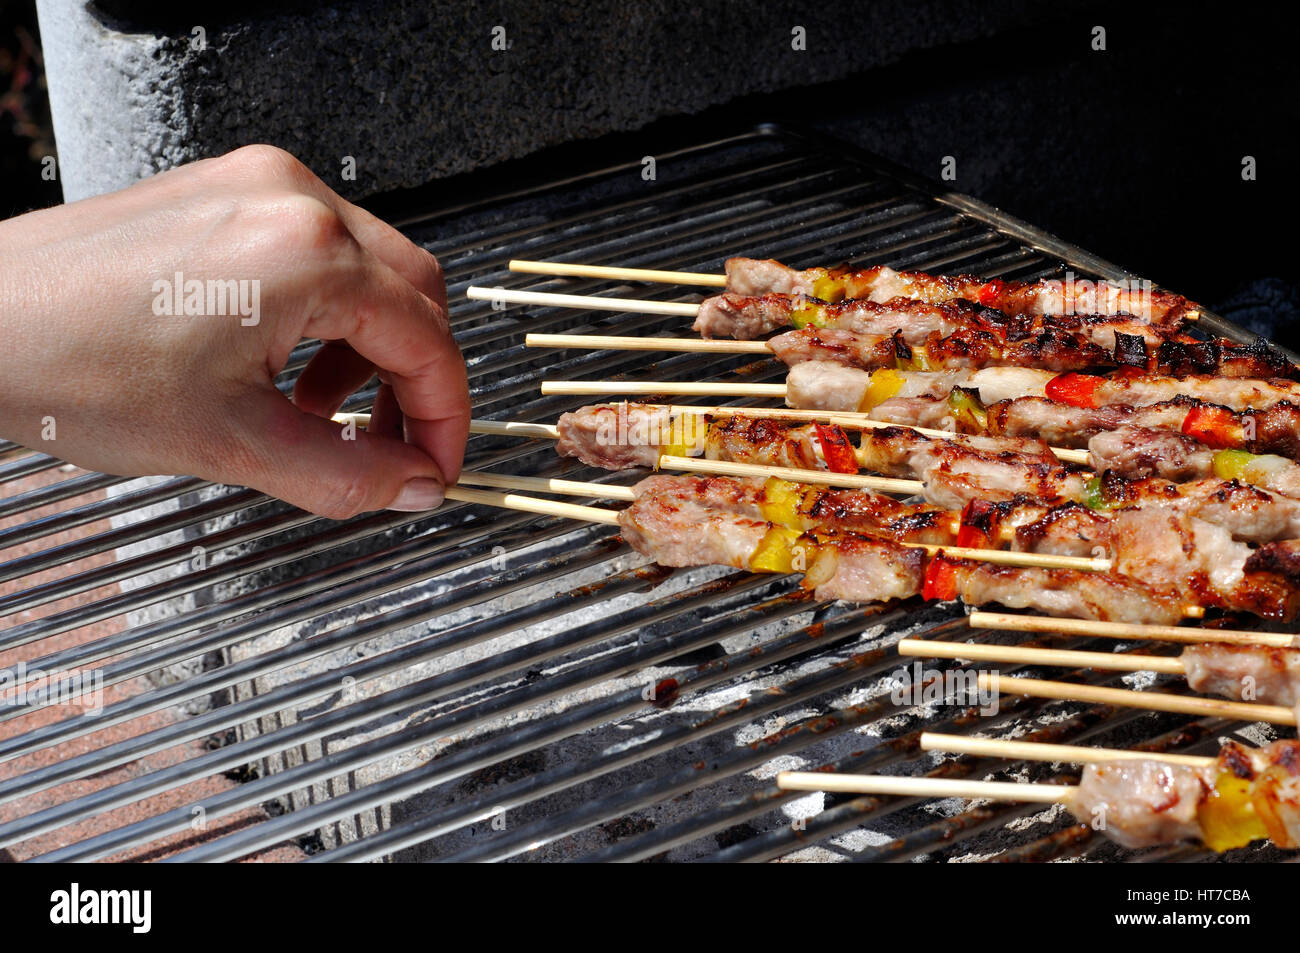 Hand with Meat and Vegetable on Barbecue - Stock Image